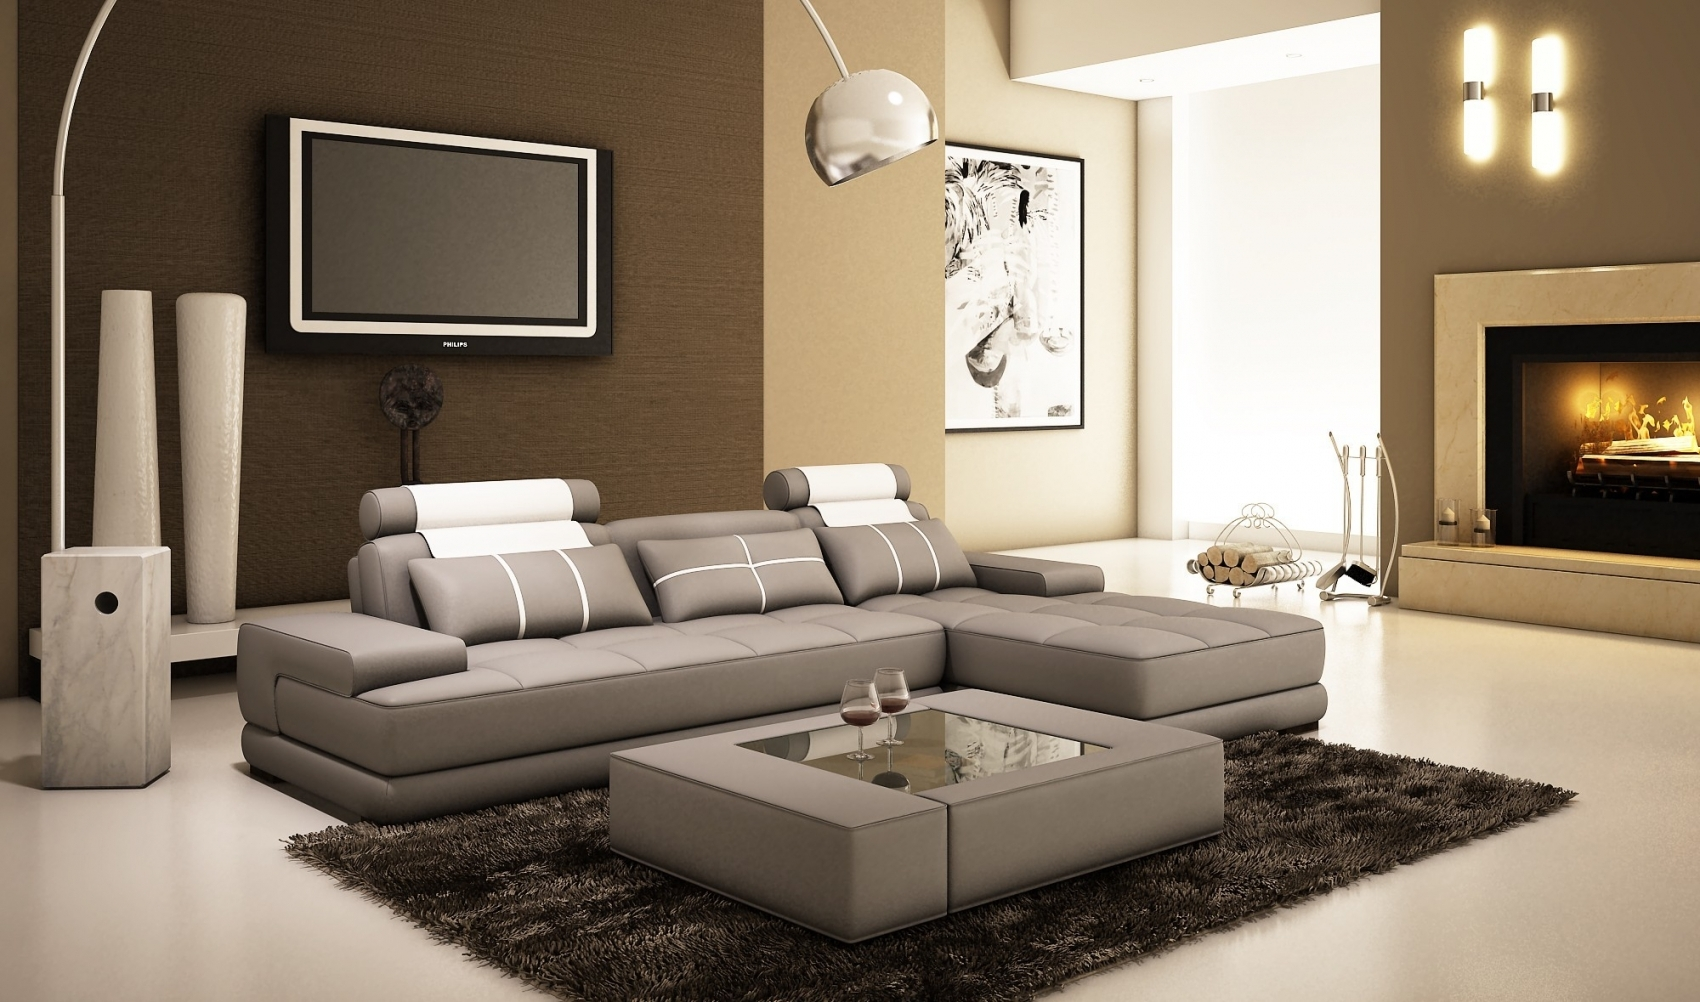 Gallery Furniture Butternut Abilene Tx Contemporary Sectional Sofas Within Houston Sectional Sofas (View 8 of 10)